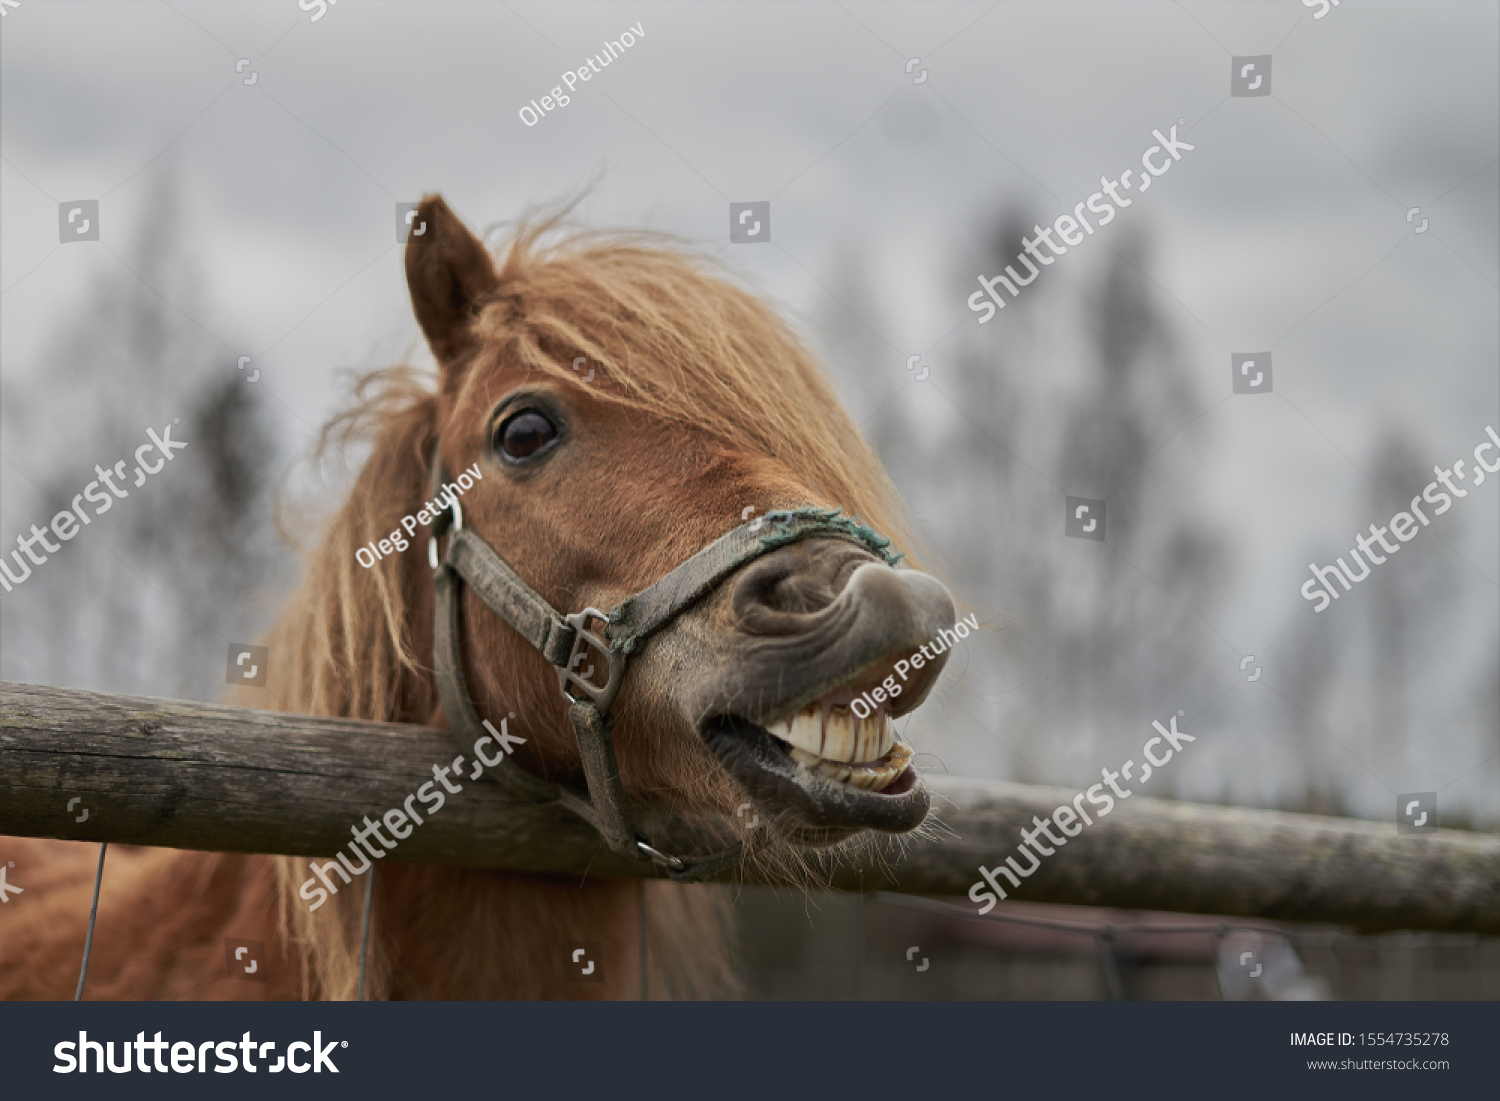 Little horse at small latvian zoo. Horse smile. Horse showing teeth, smiling horse, funny horses, funny animal face. laugh animal #1554735278